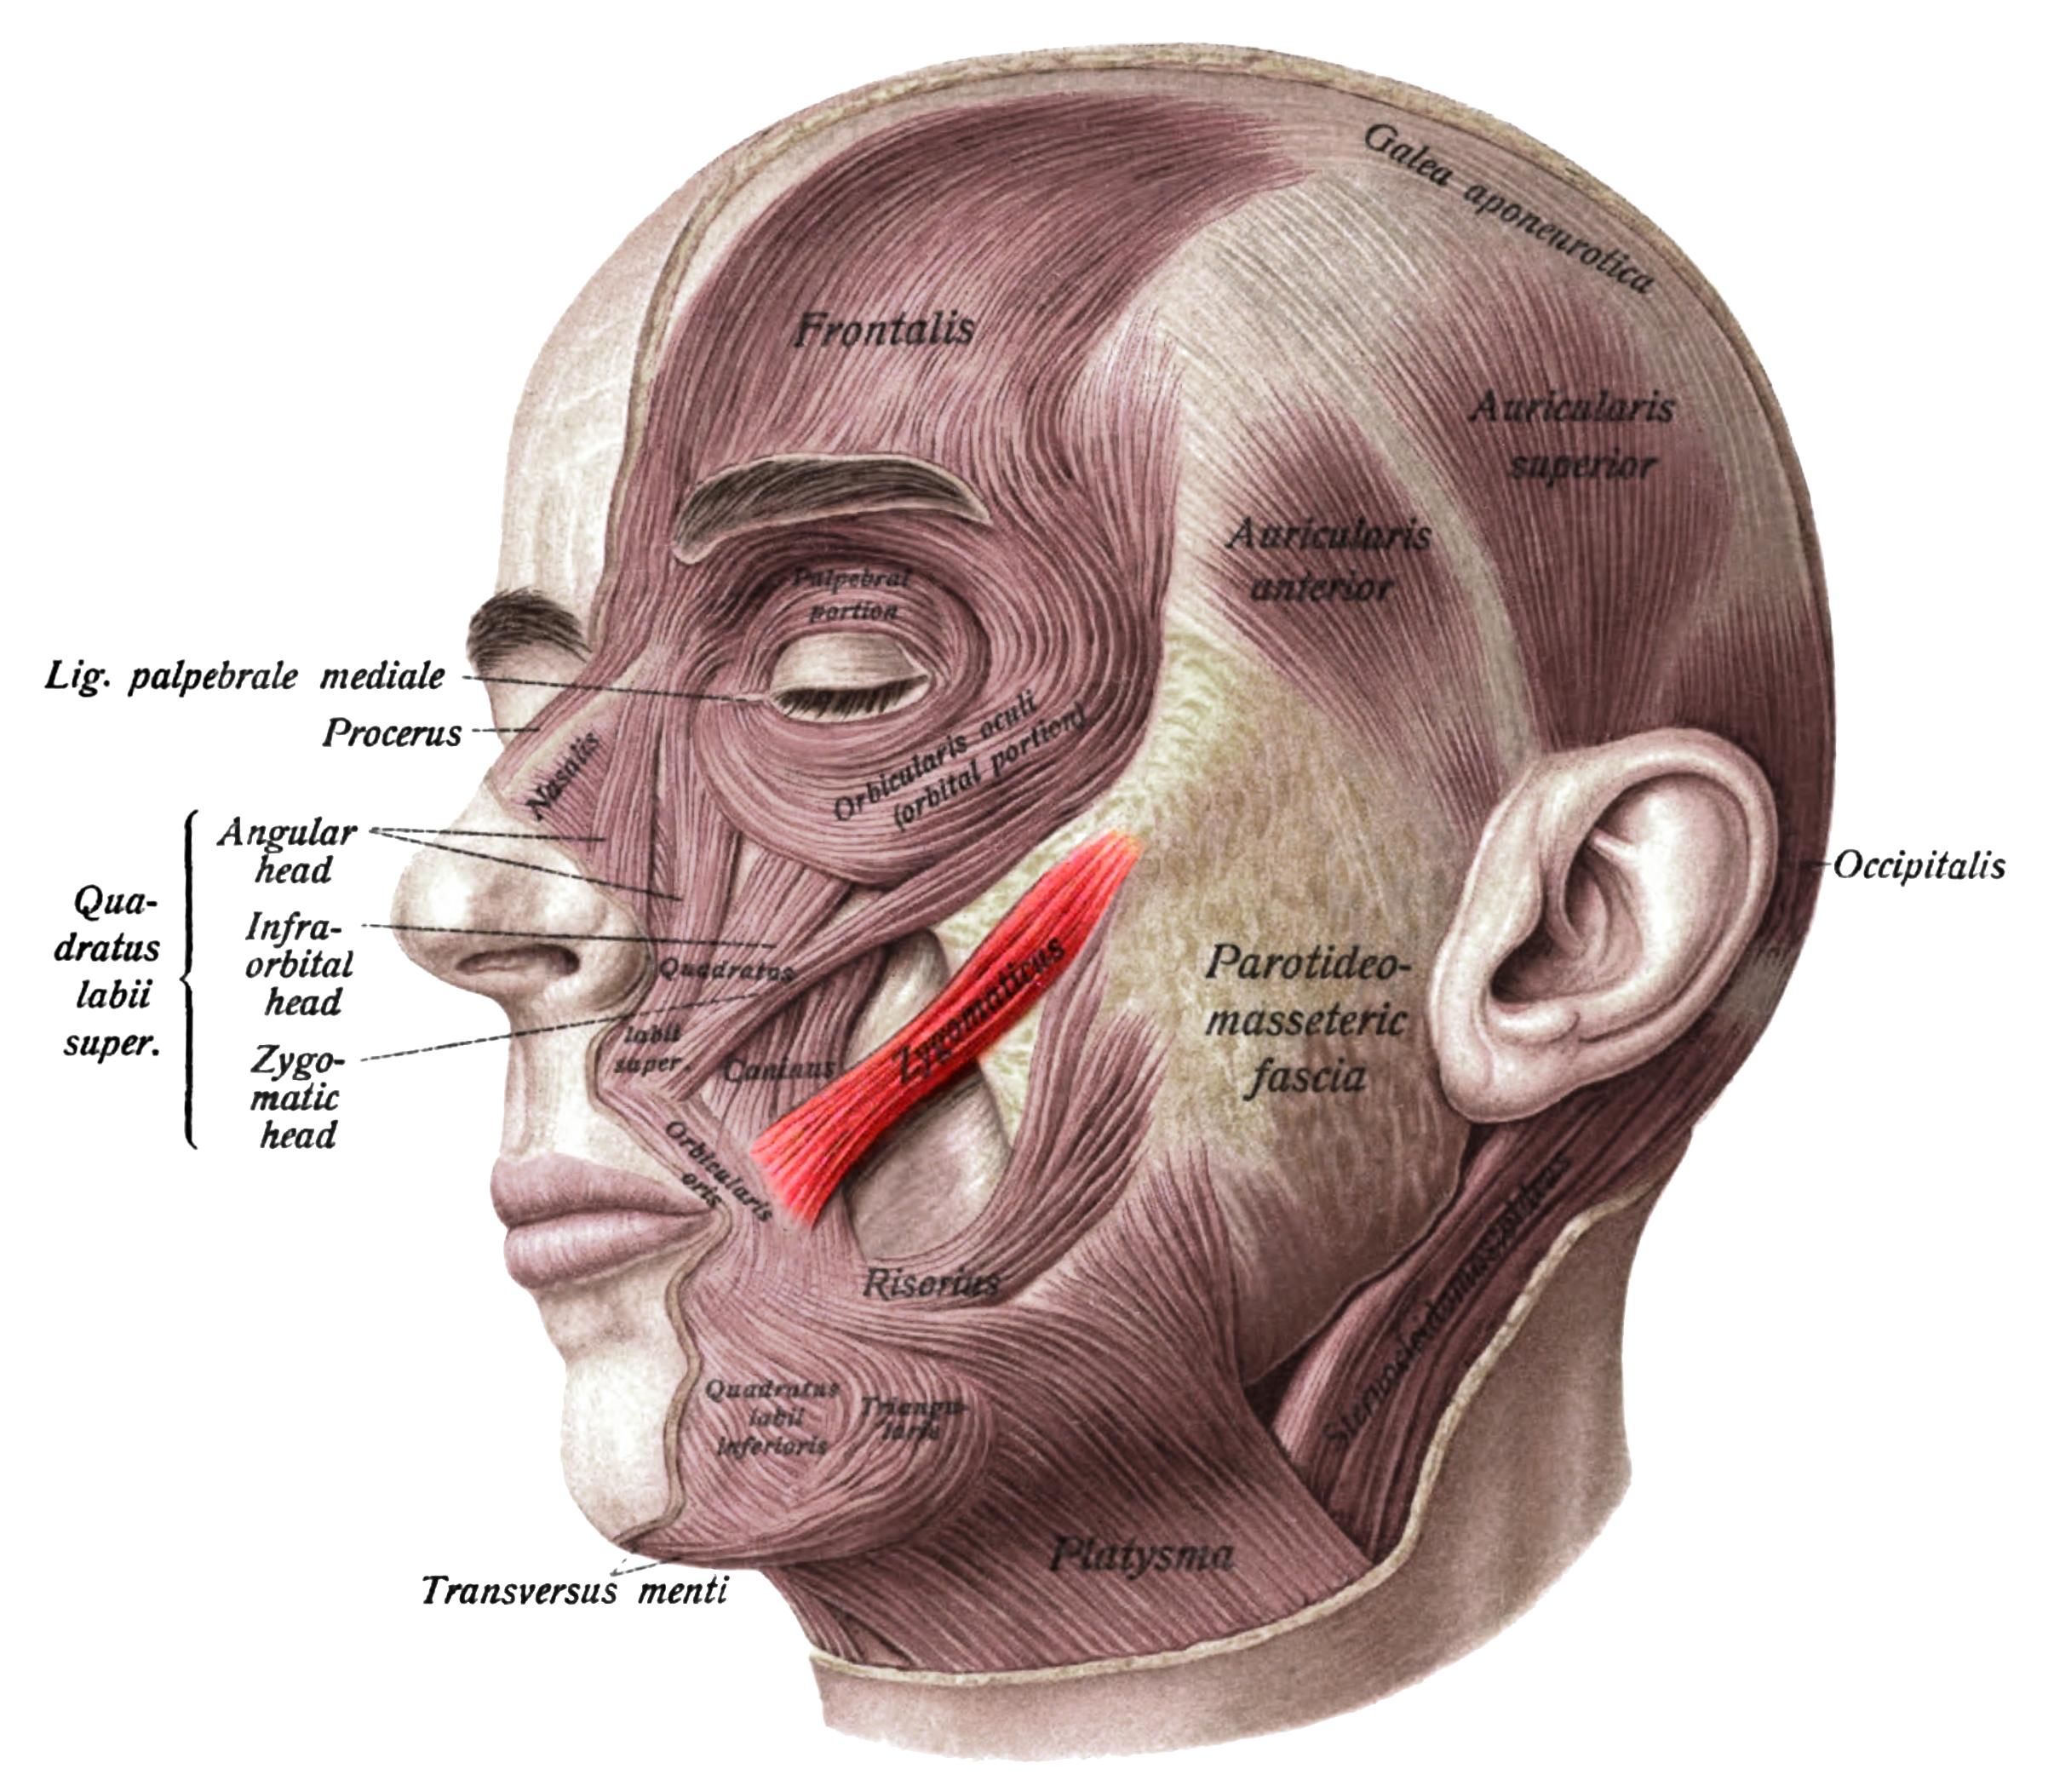 modiolus face - Google 검색 | forensic anatomy references-face ...